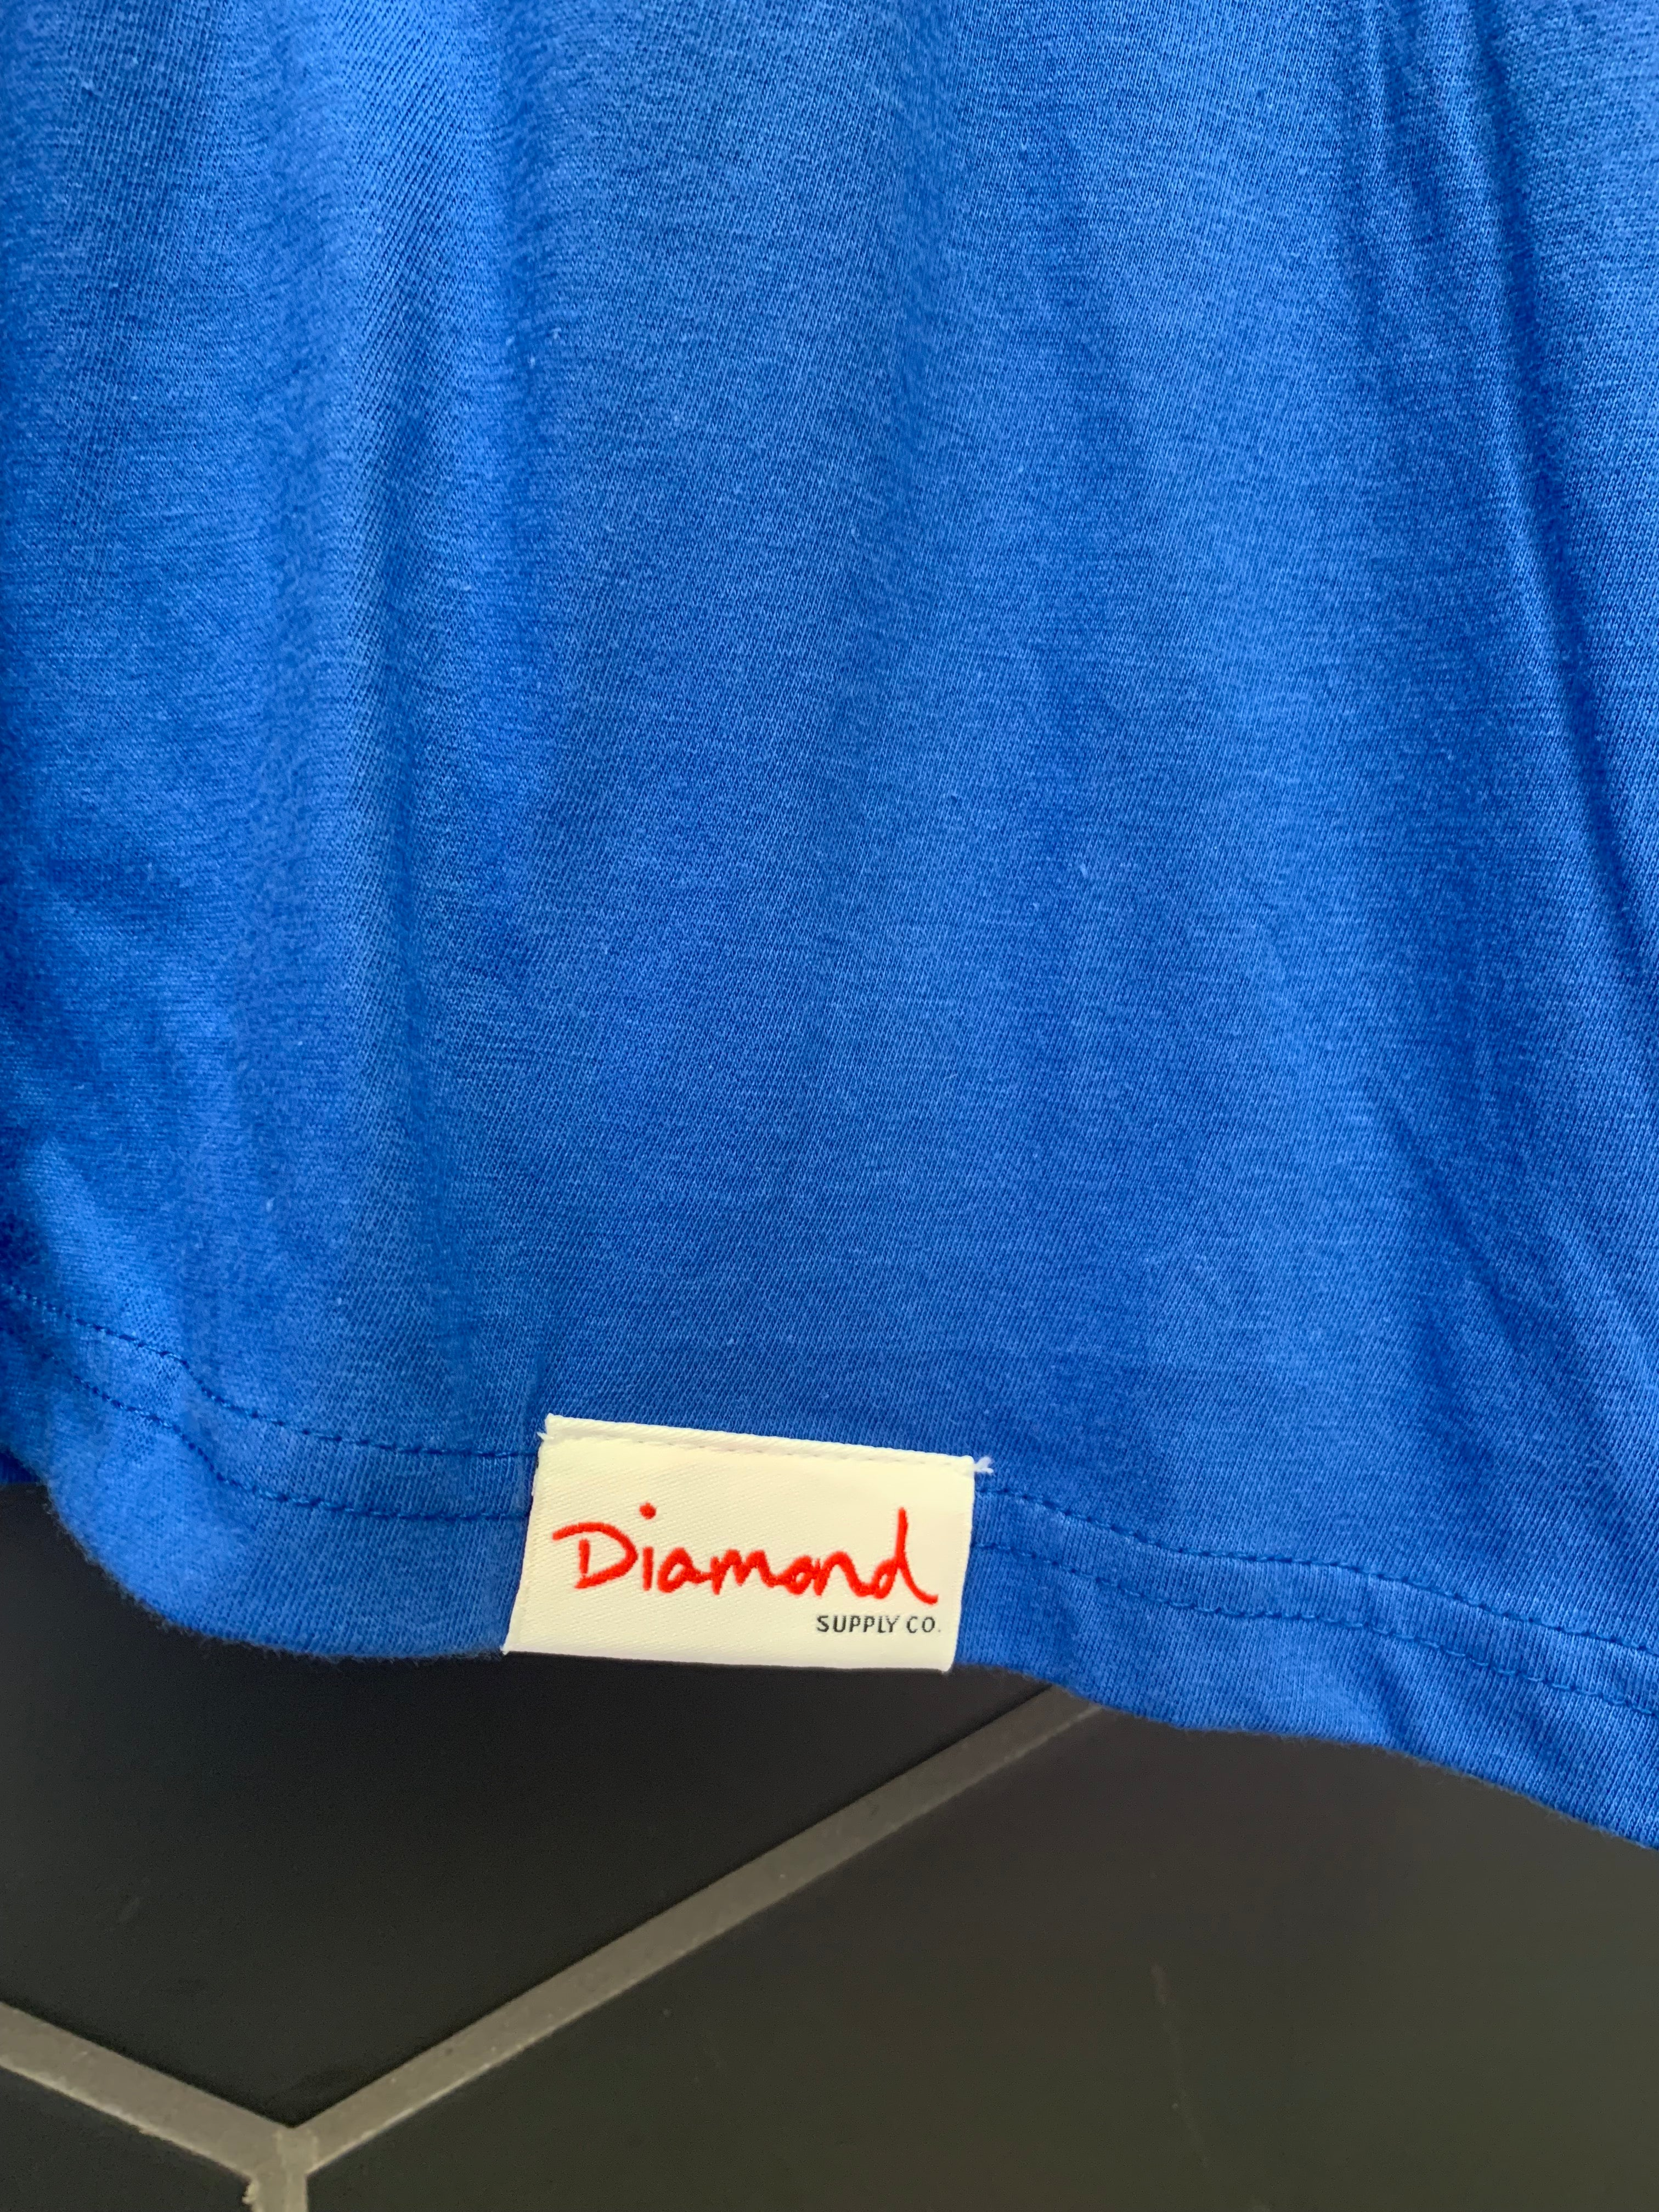 New! Diamond Supply Co Royal Blue World Championship S/S T-Shirt (Multiple Sizes)